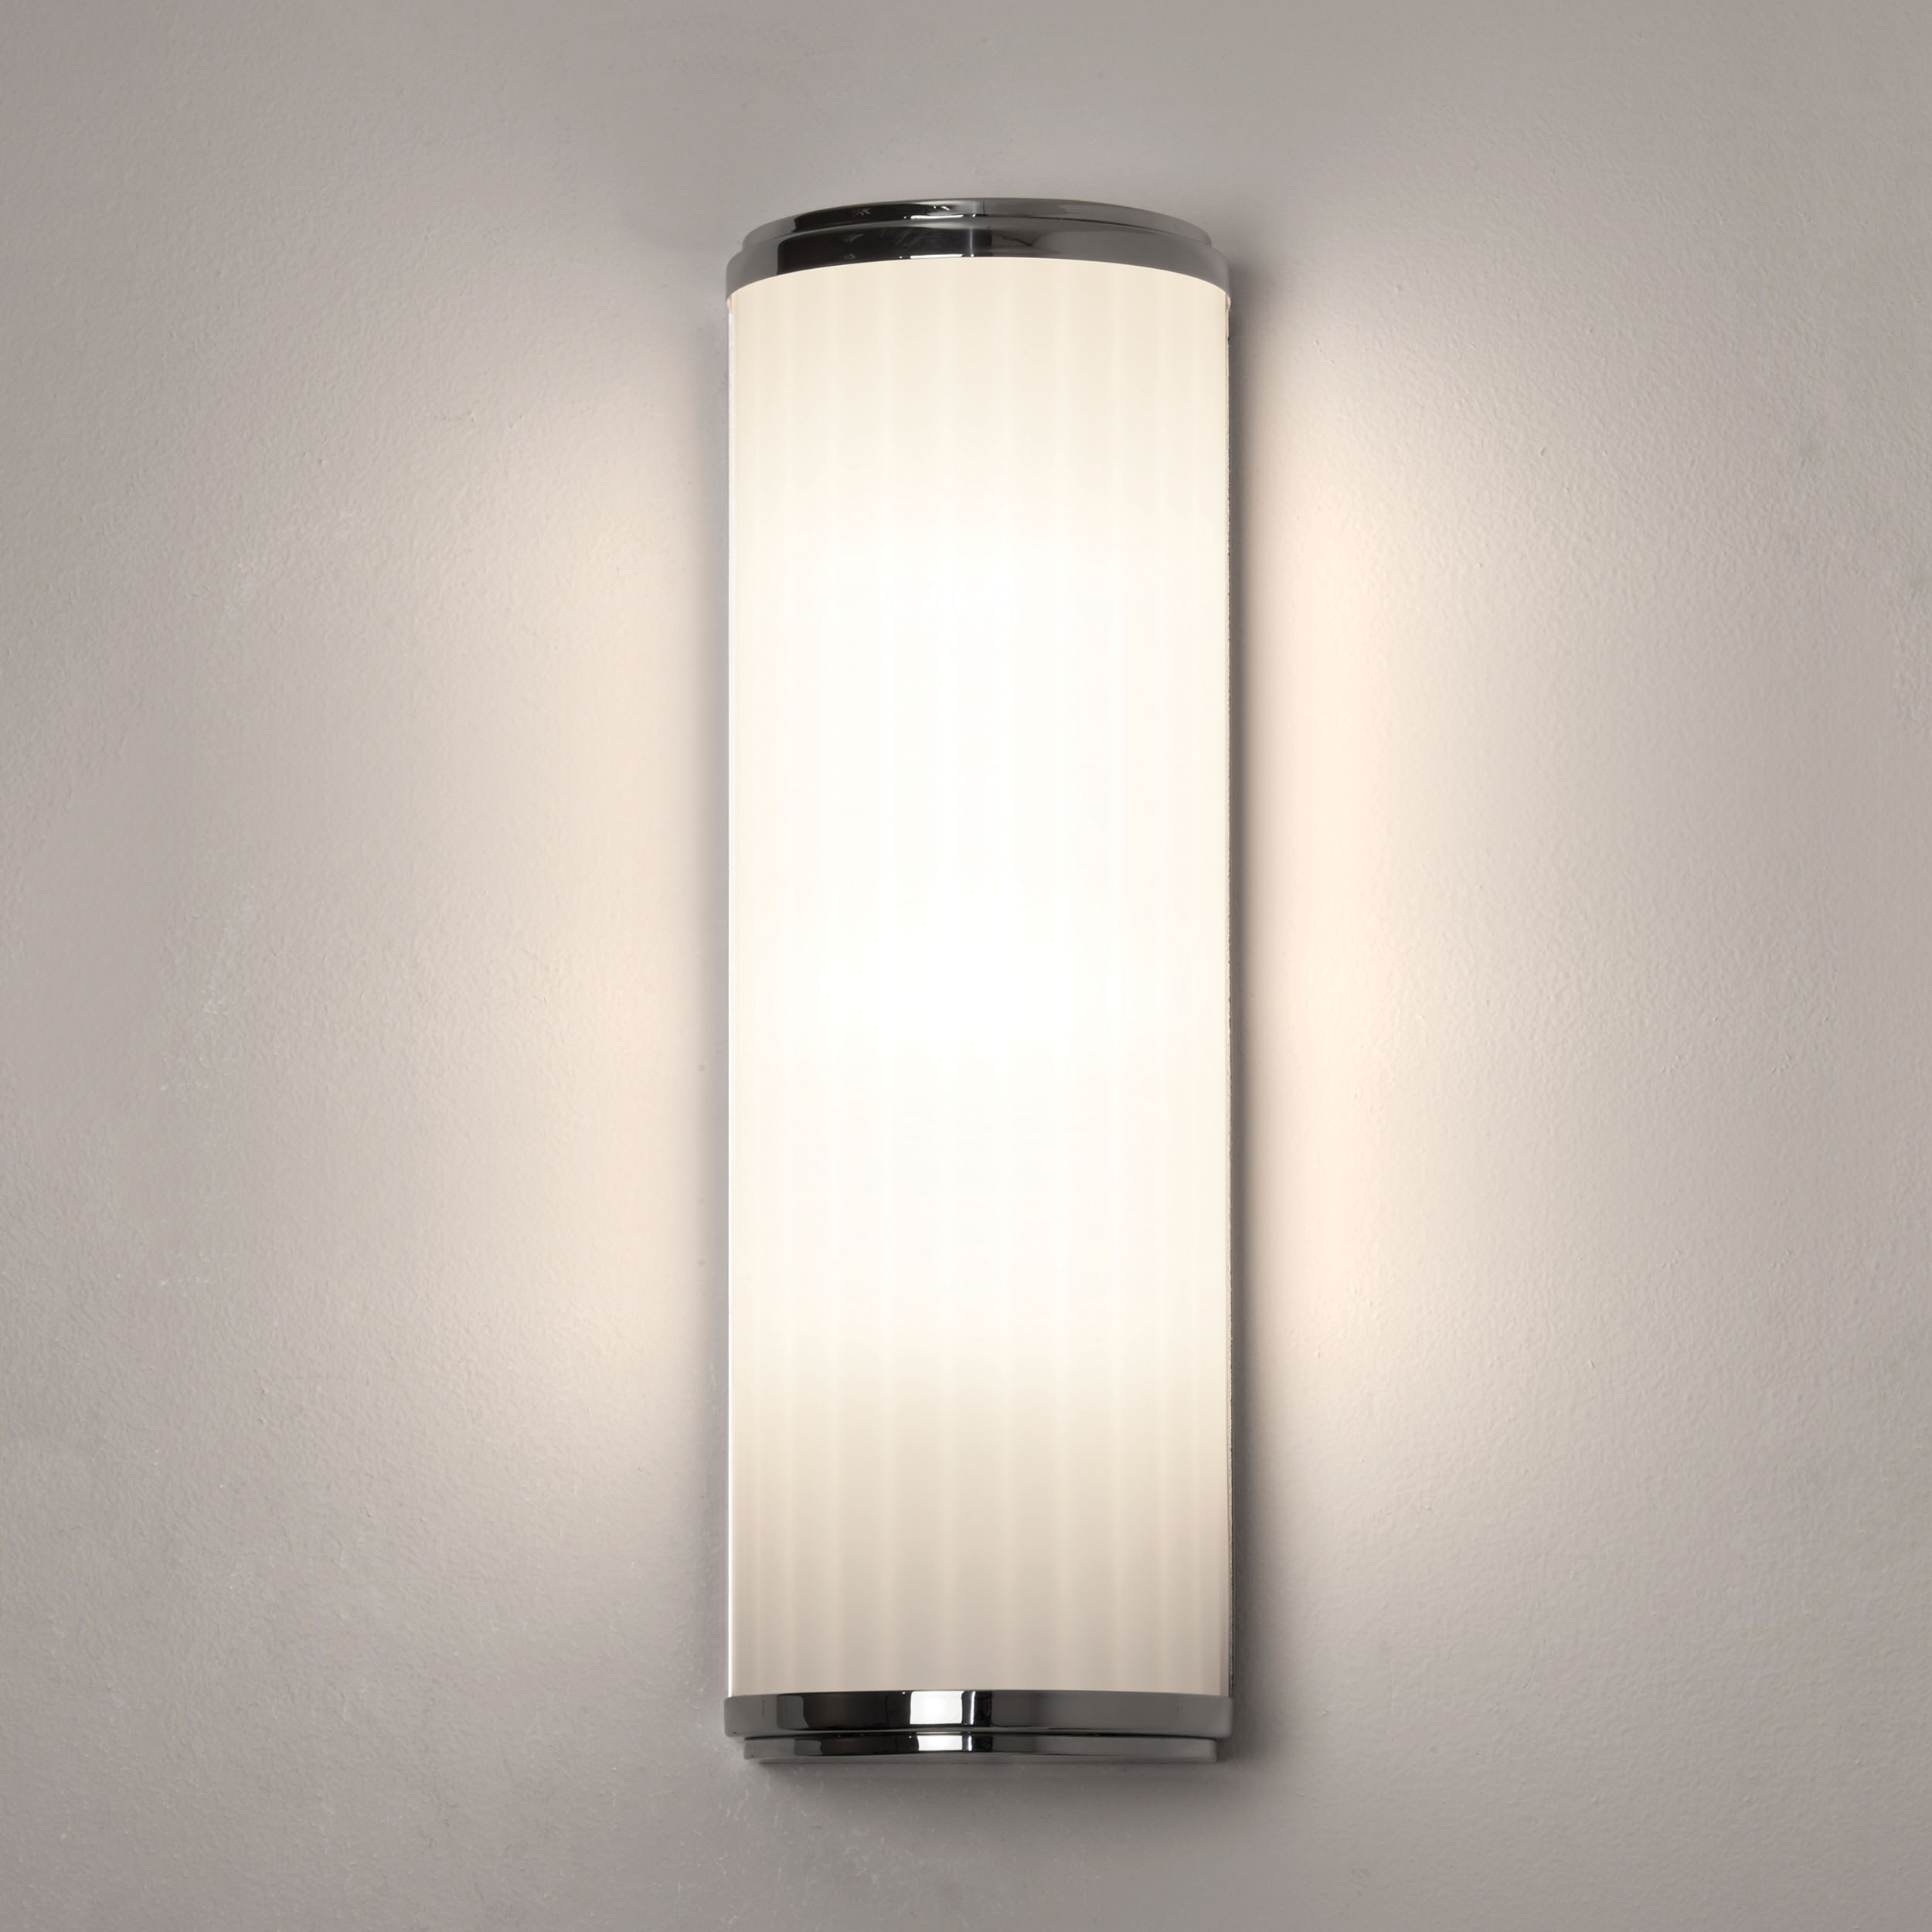 Bathroom Lights Art Deco: ASTRO MONZA 400 6.4W LED IP44 Bathroom Wall Mirror Light